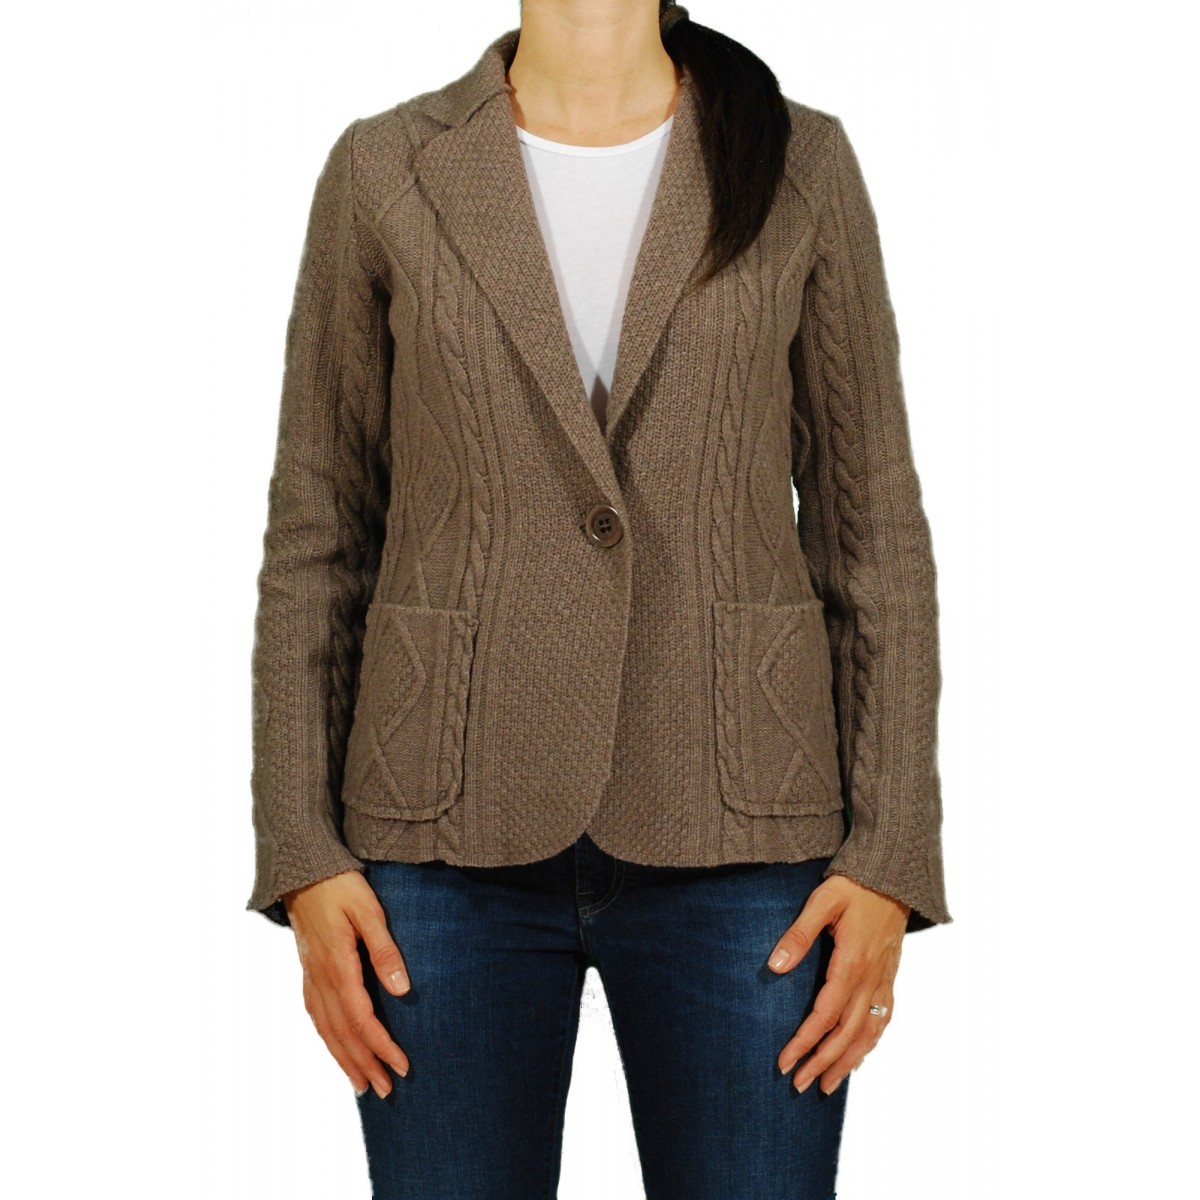 Jacket Woman Kangra - 5708/57 44 Jacket Jacket Woman Lana